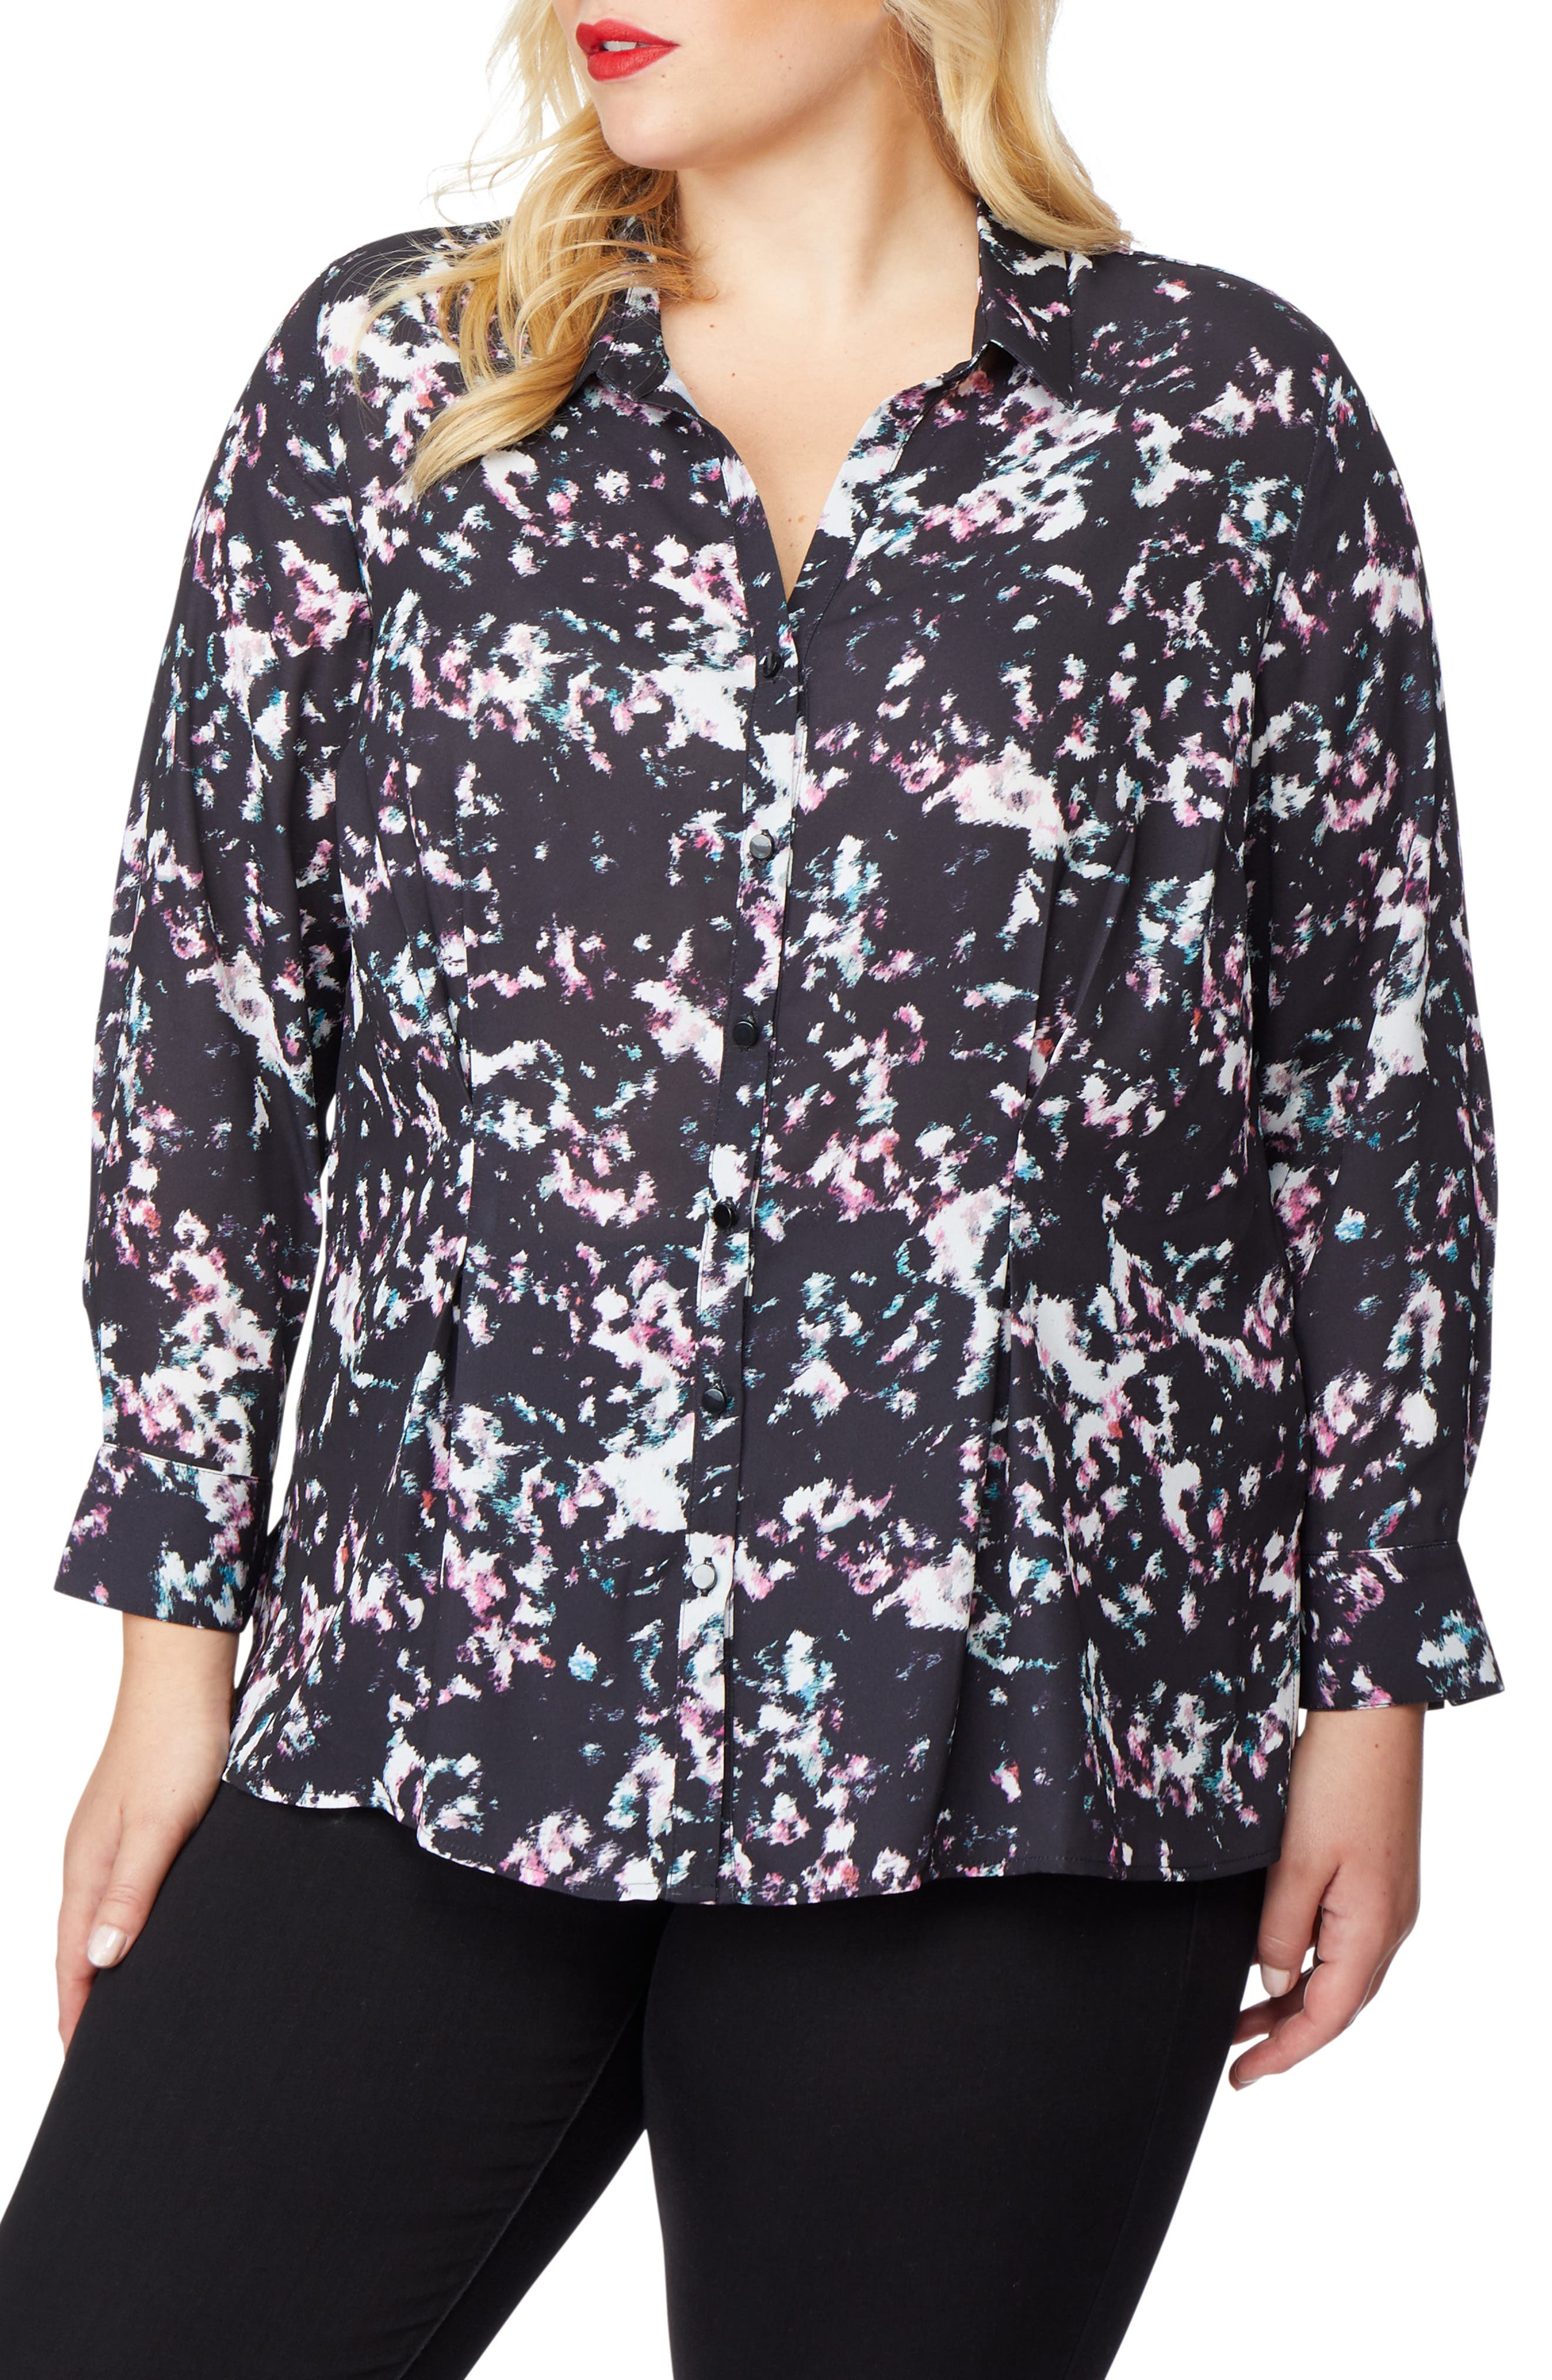 REBEL WILSON X ANGELS,                             Print Blouse,                             Alternate thumbnail 3, color,                             001